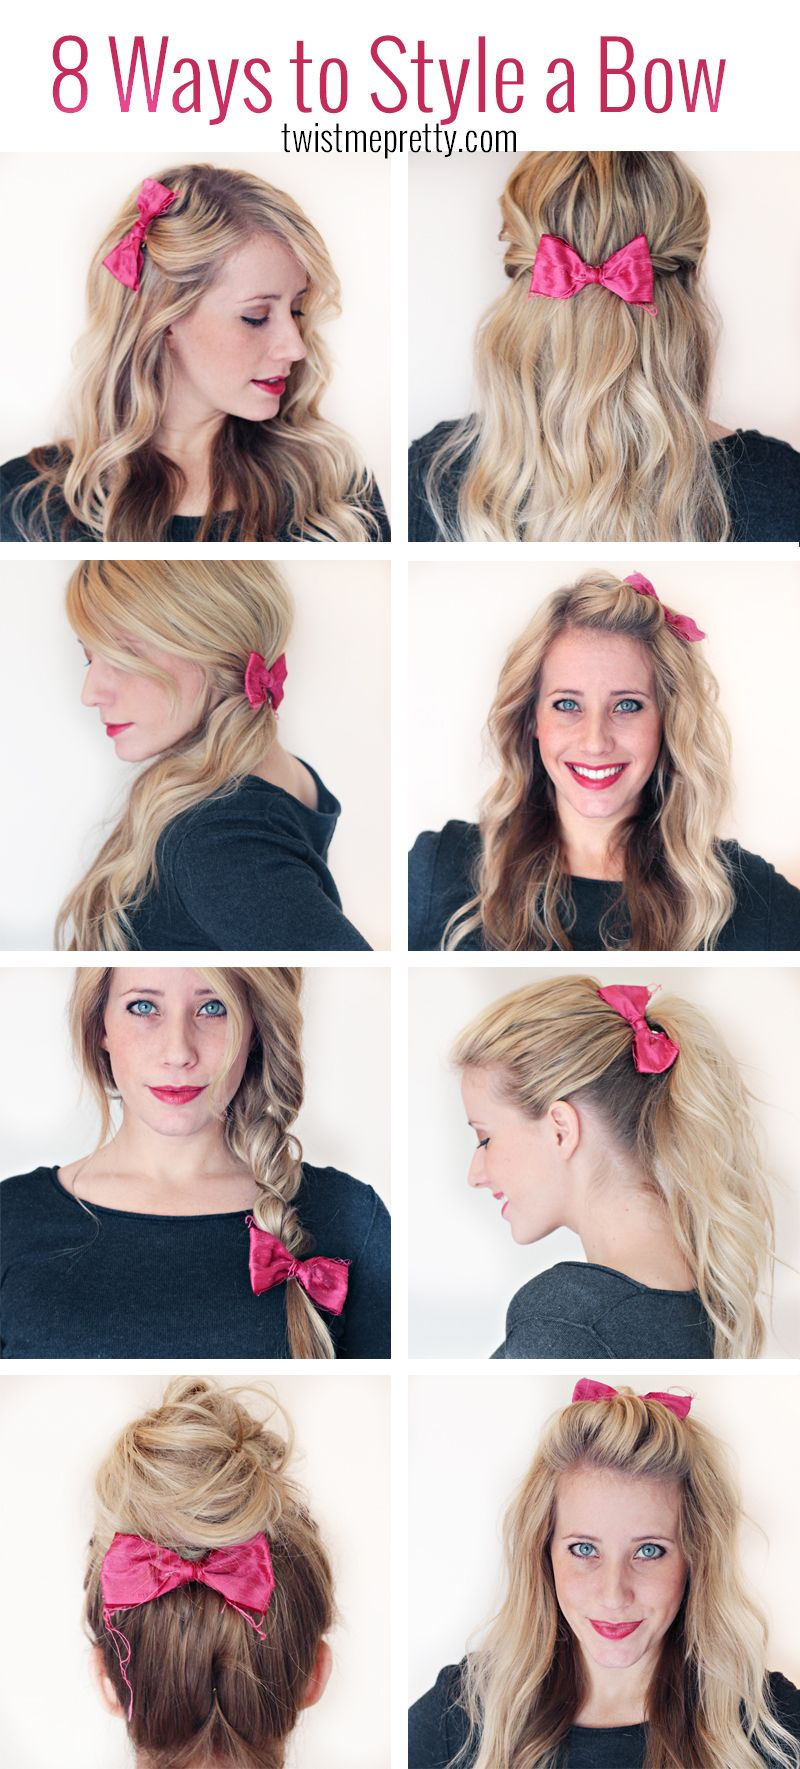 8 Ways to Style a Bow – Twist Me Pretty